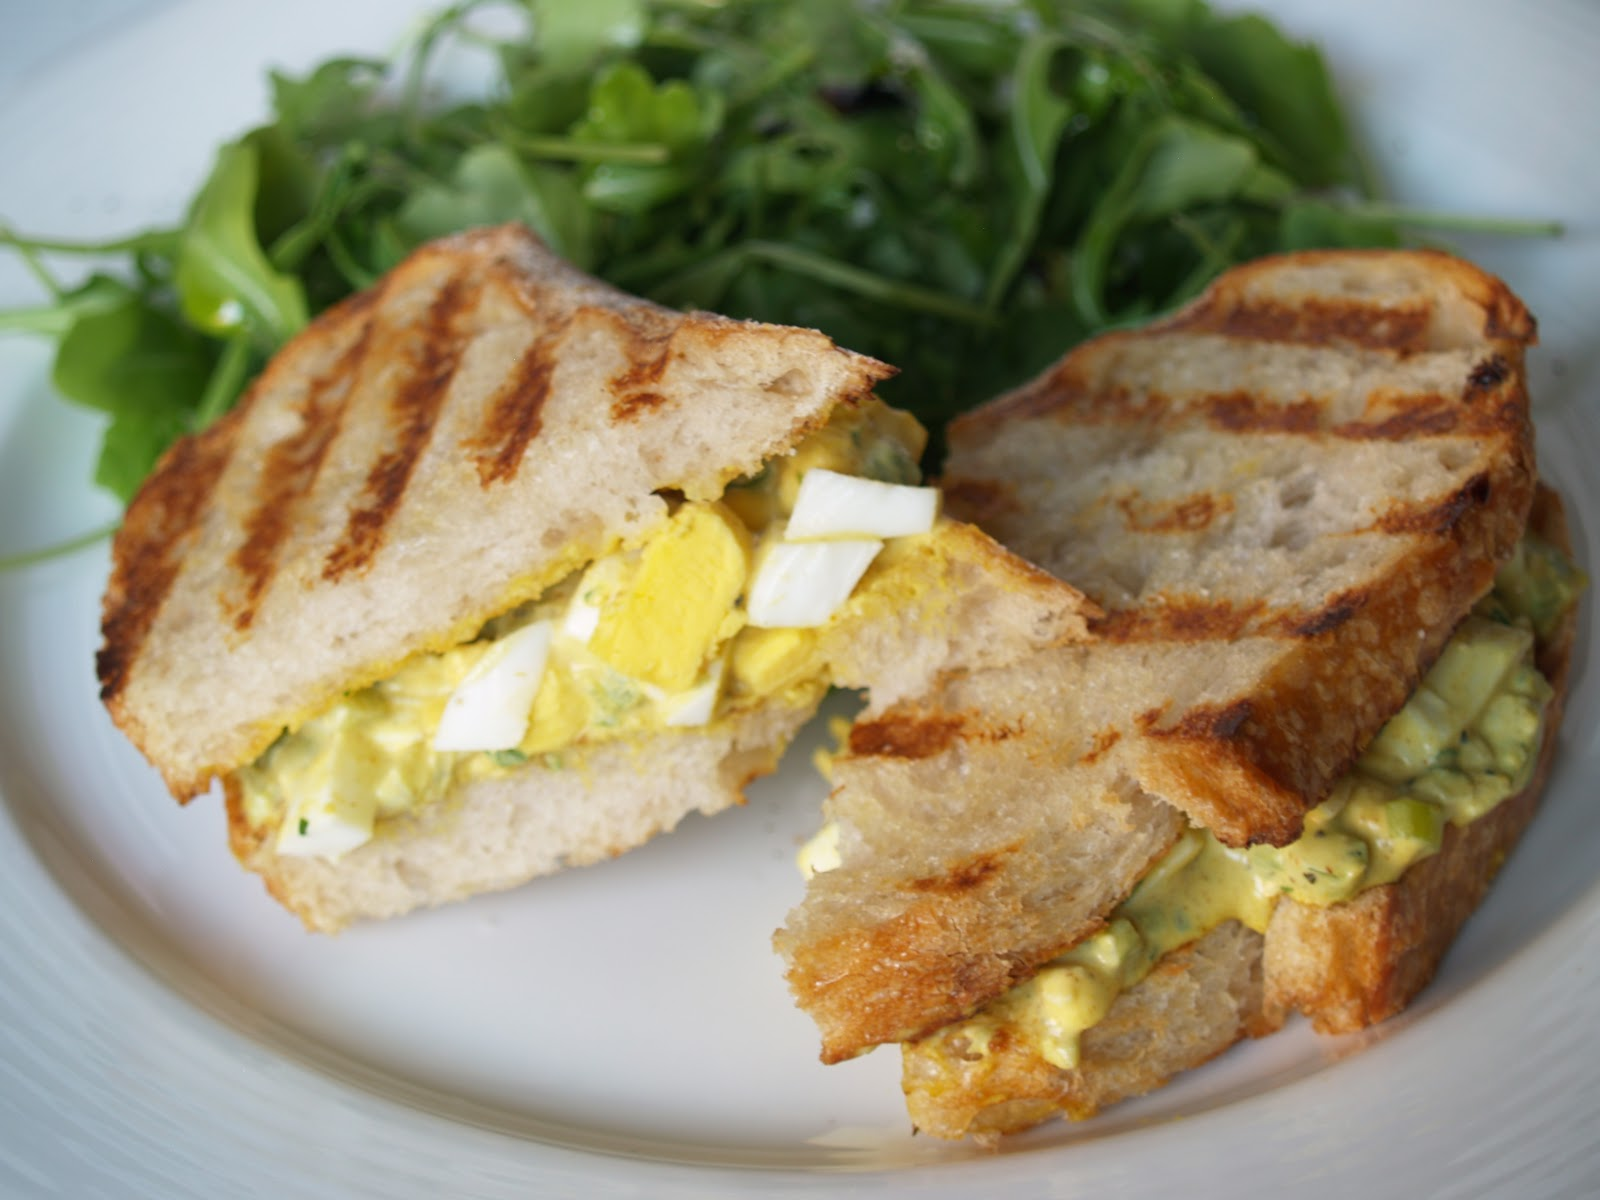 Persimmon and Peach: Curried Egg Salad